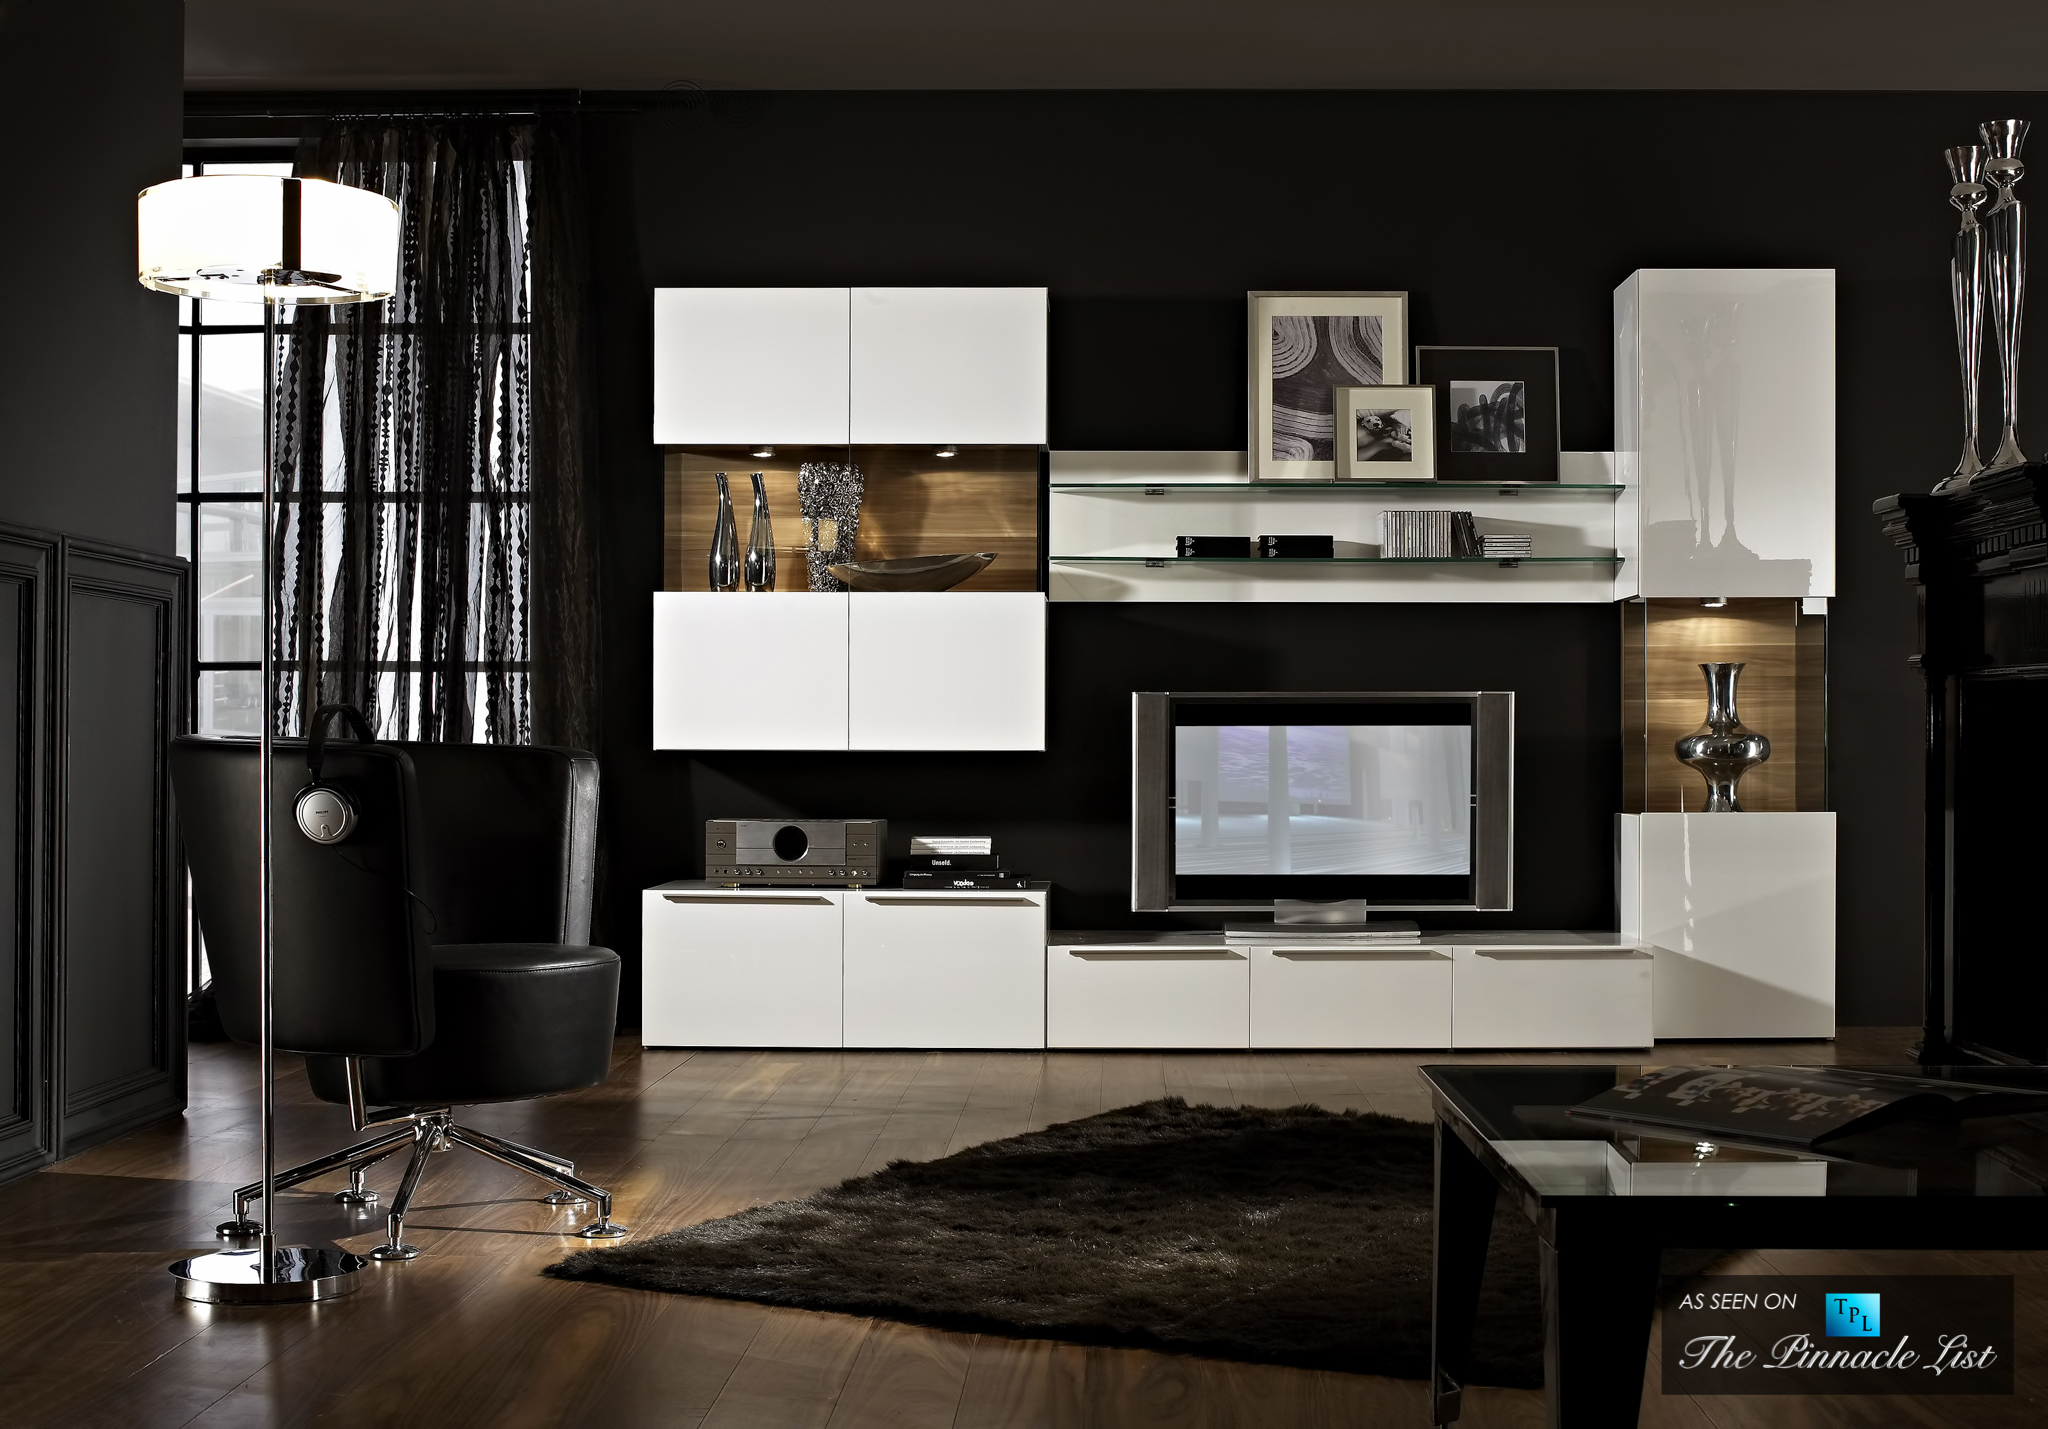 Indoors - Virtuous Beats - Create a Luxurious Acoustic Experience in Your Home